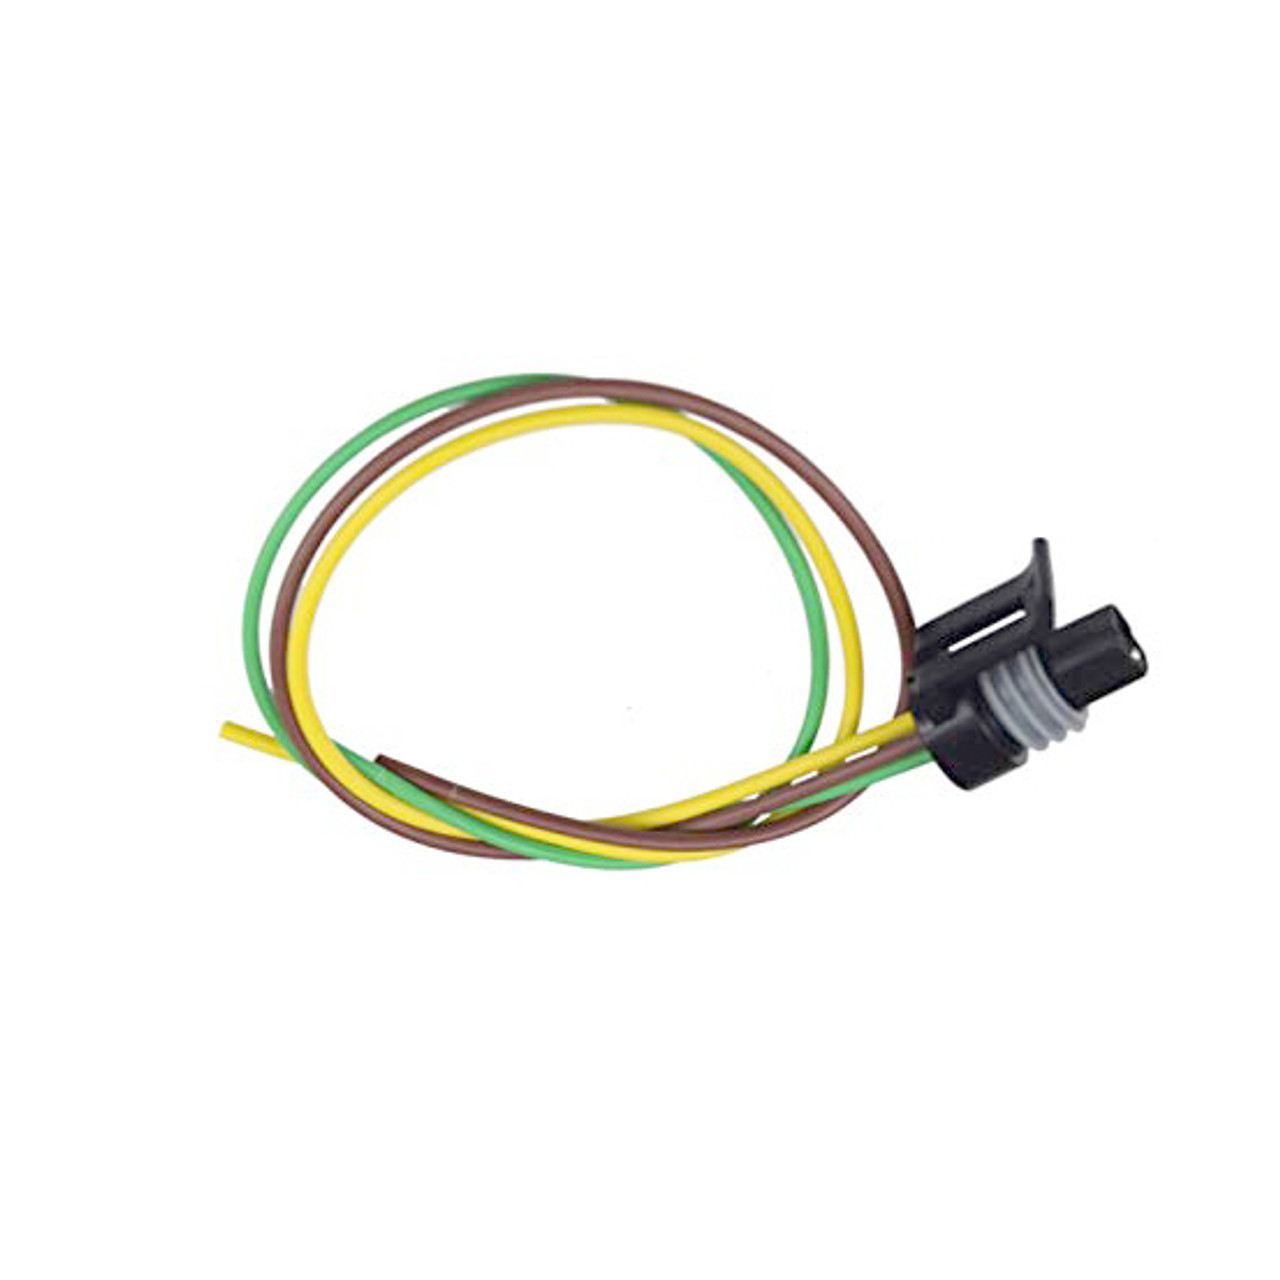 Ford 6 4 Ebp Wiring Pigtail - Wiring Diagram Verified Usb To Ethernet Cable Wiring Diagram on